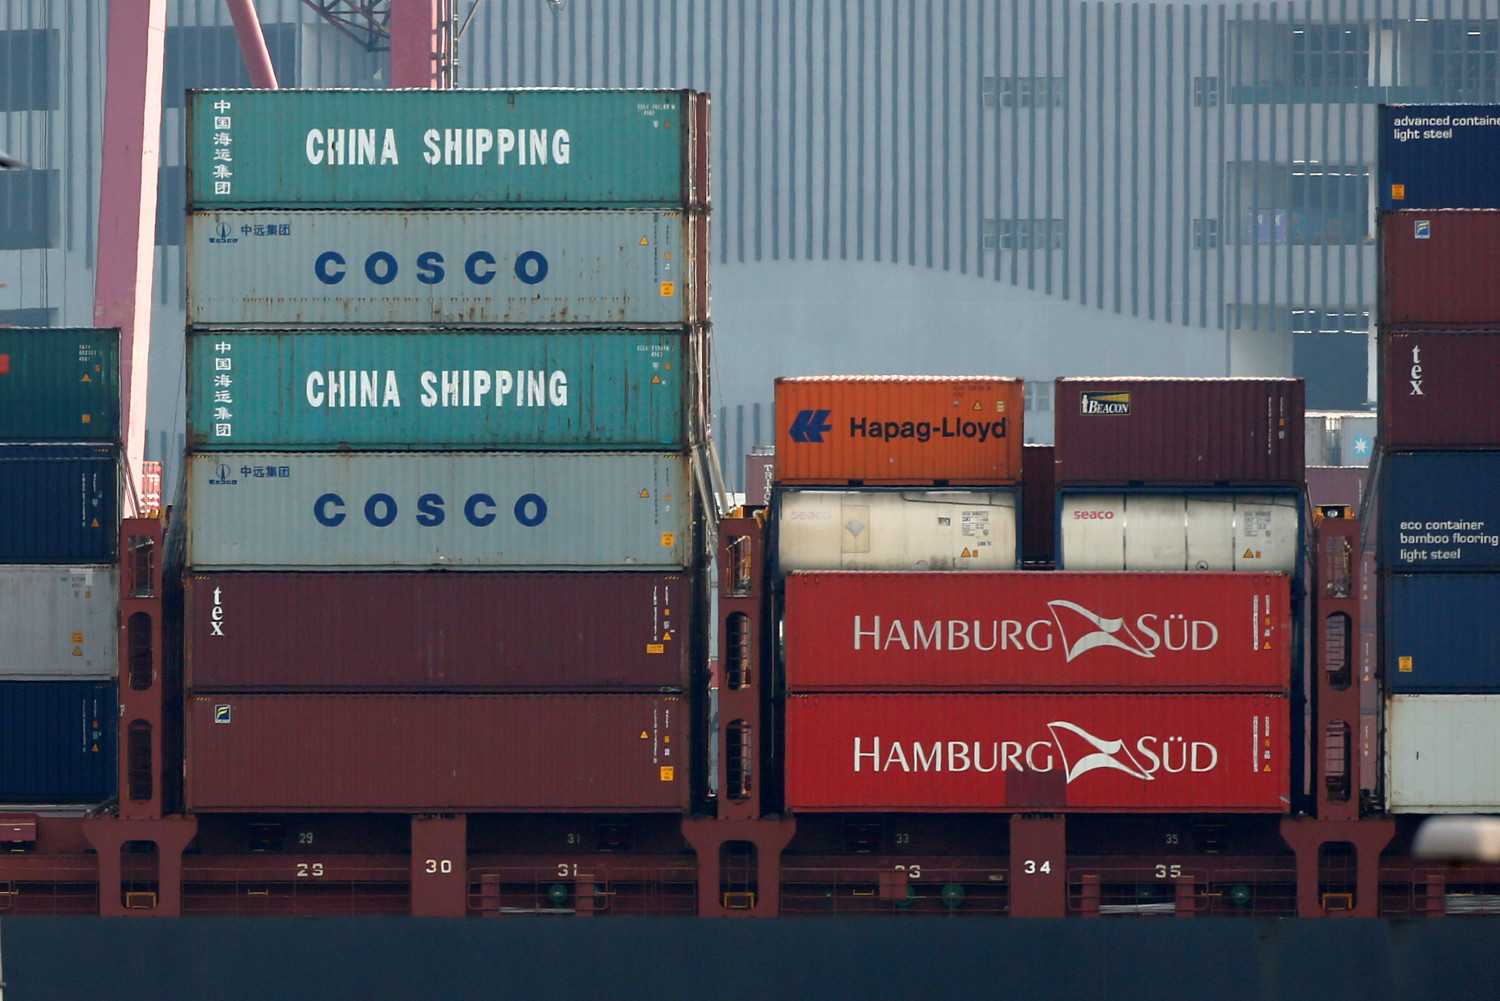 Shipping containers of China Shipping and COSCO are seen on a container ship at Kwai Tsing Container Terminals in Hong Kong